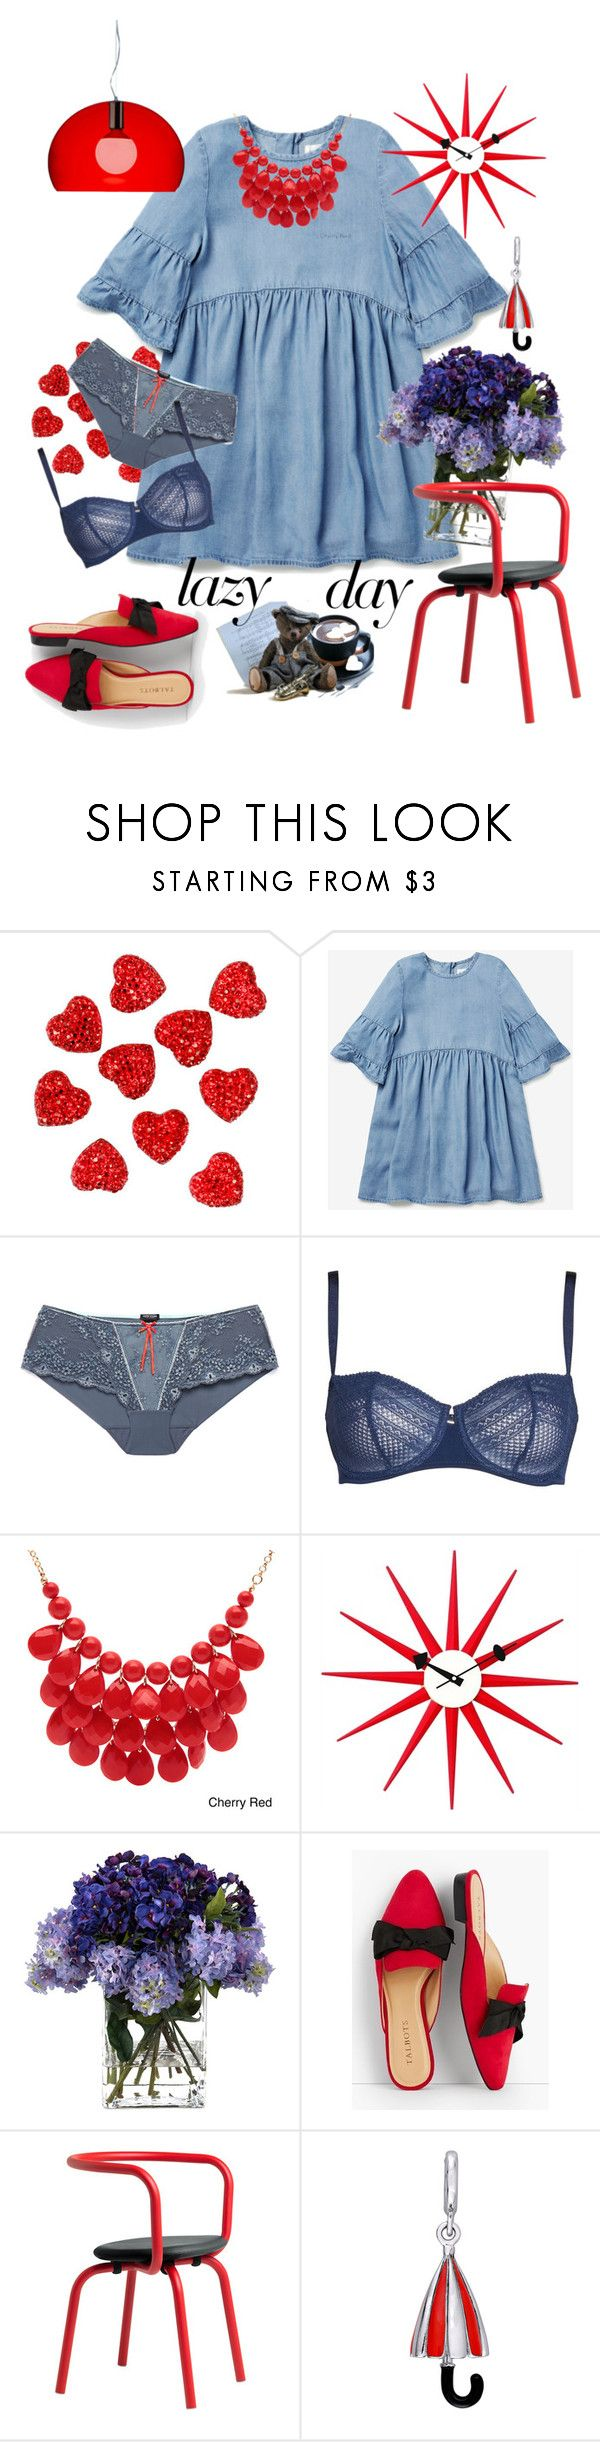 """Just a lazy day:)"" by j477 ❤ liked on Polyvore featuring Heidi Klum, Passionata, Alexa Starr, John-Richard, Talbots, Laura Ashley and Kartell"